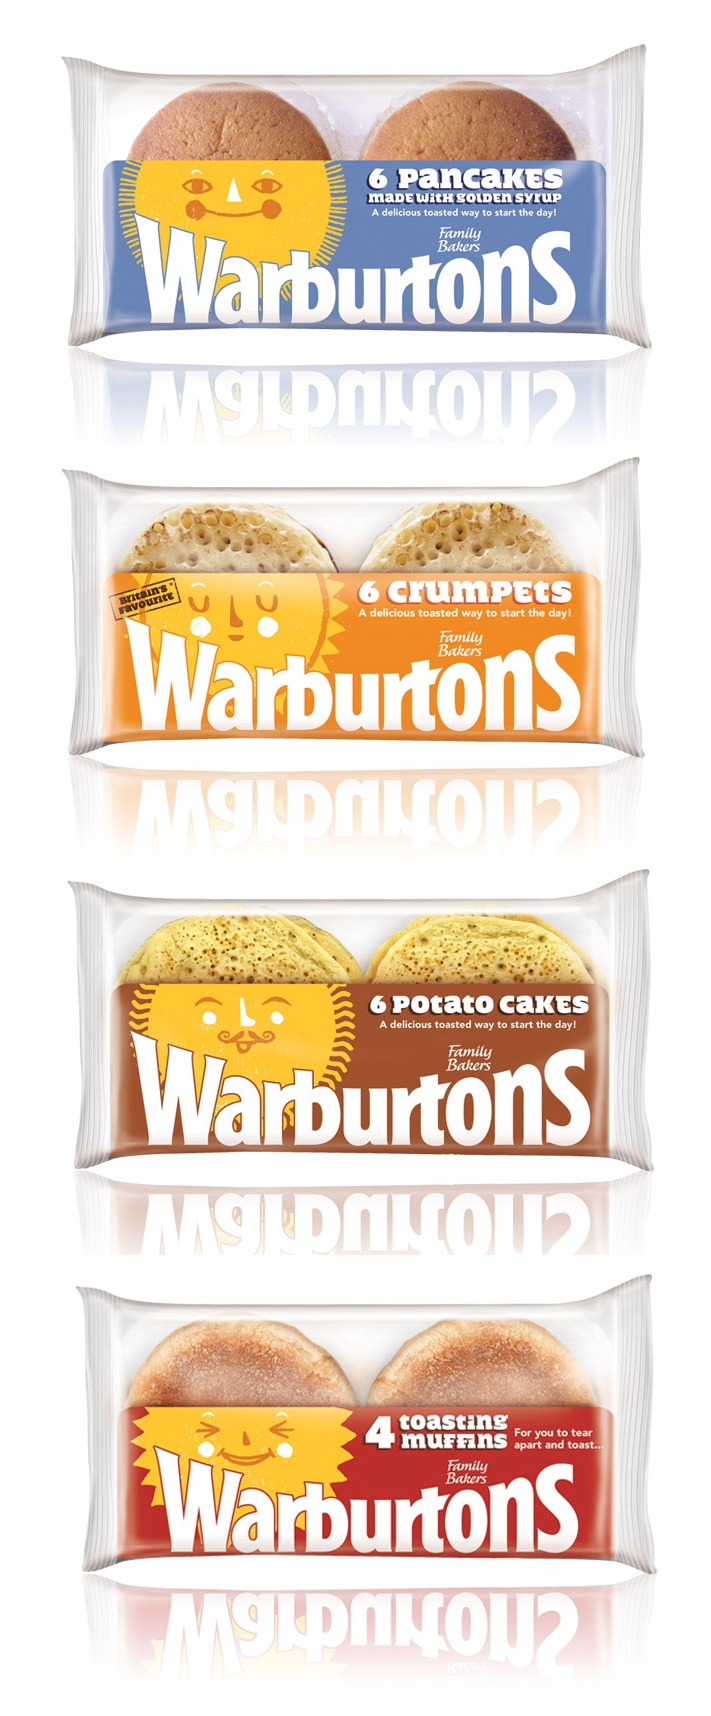 warburtons packaging by smith & milton illustrated by Ben Javen. Love these.